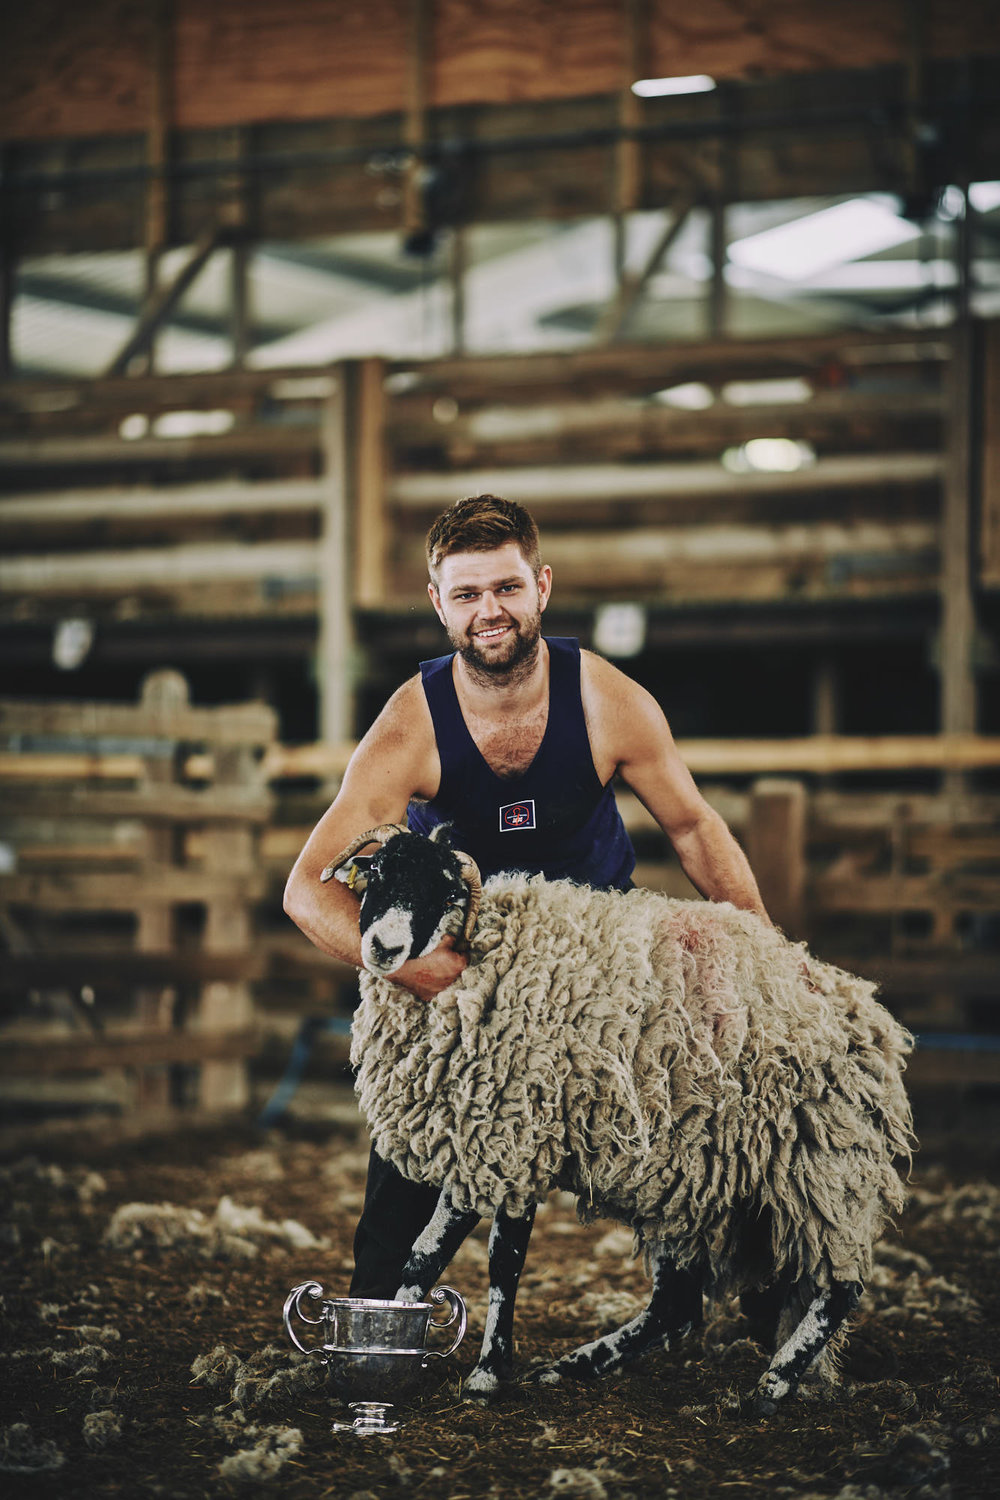 natural outdoor reportage farming agricultural business photography for country living brands by yorkshire based matthew lloyd 7.jpg